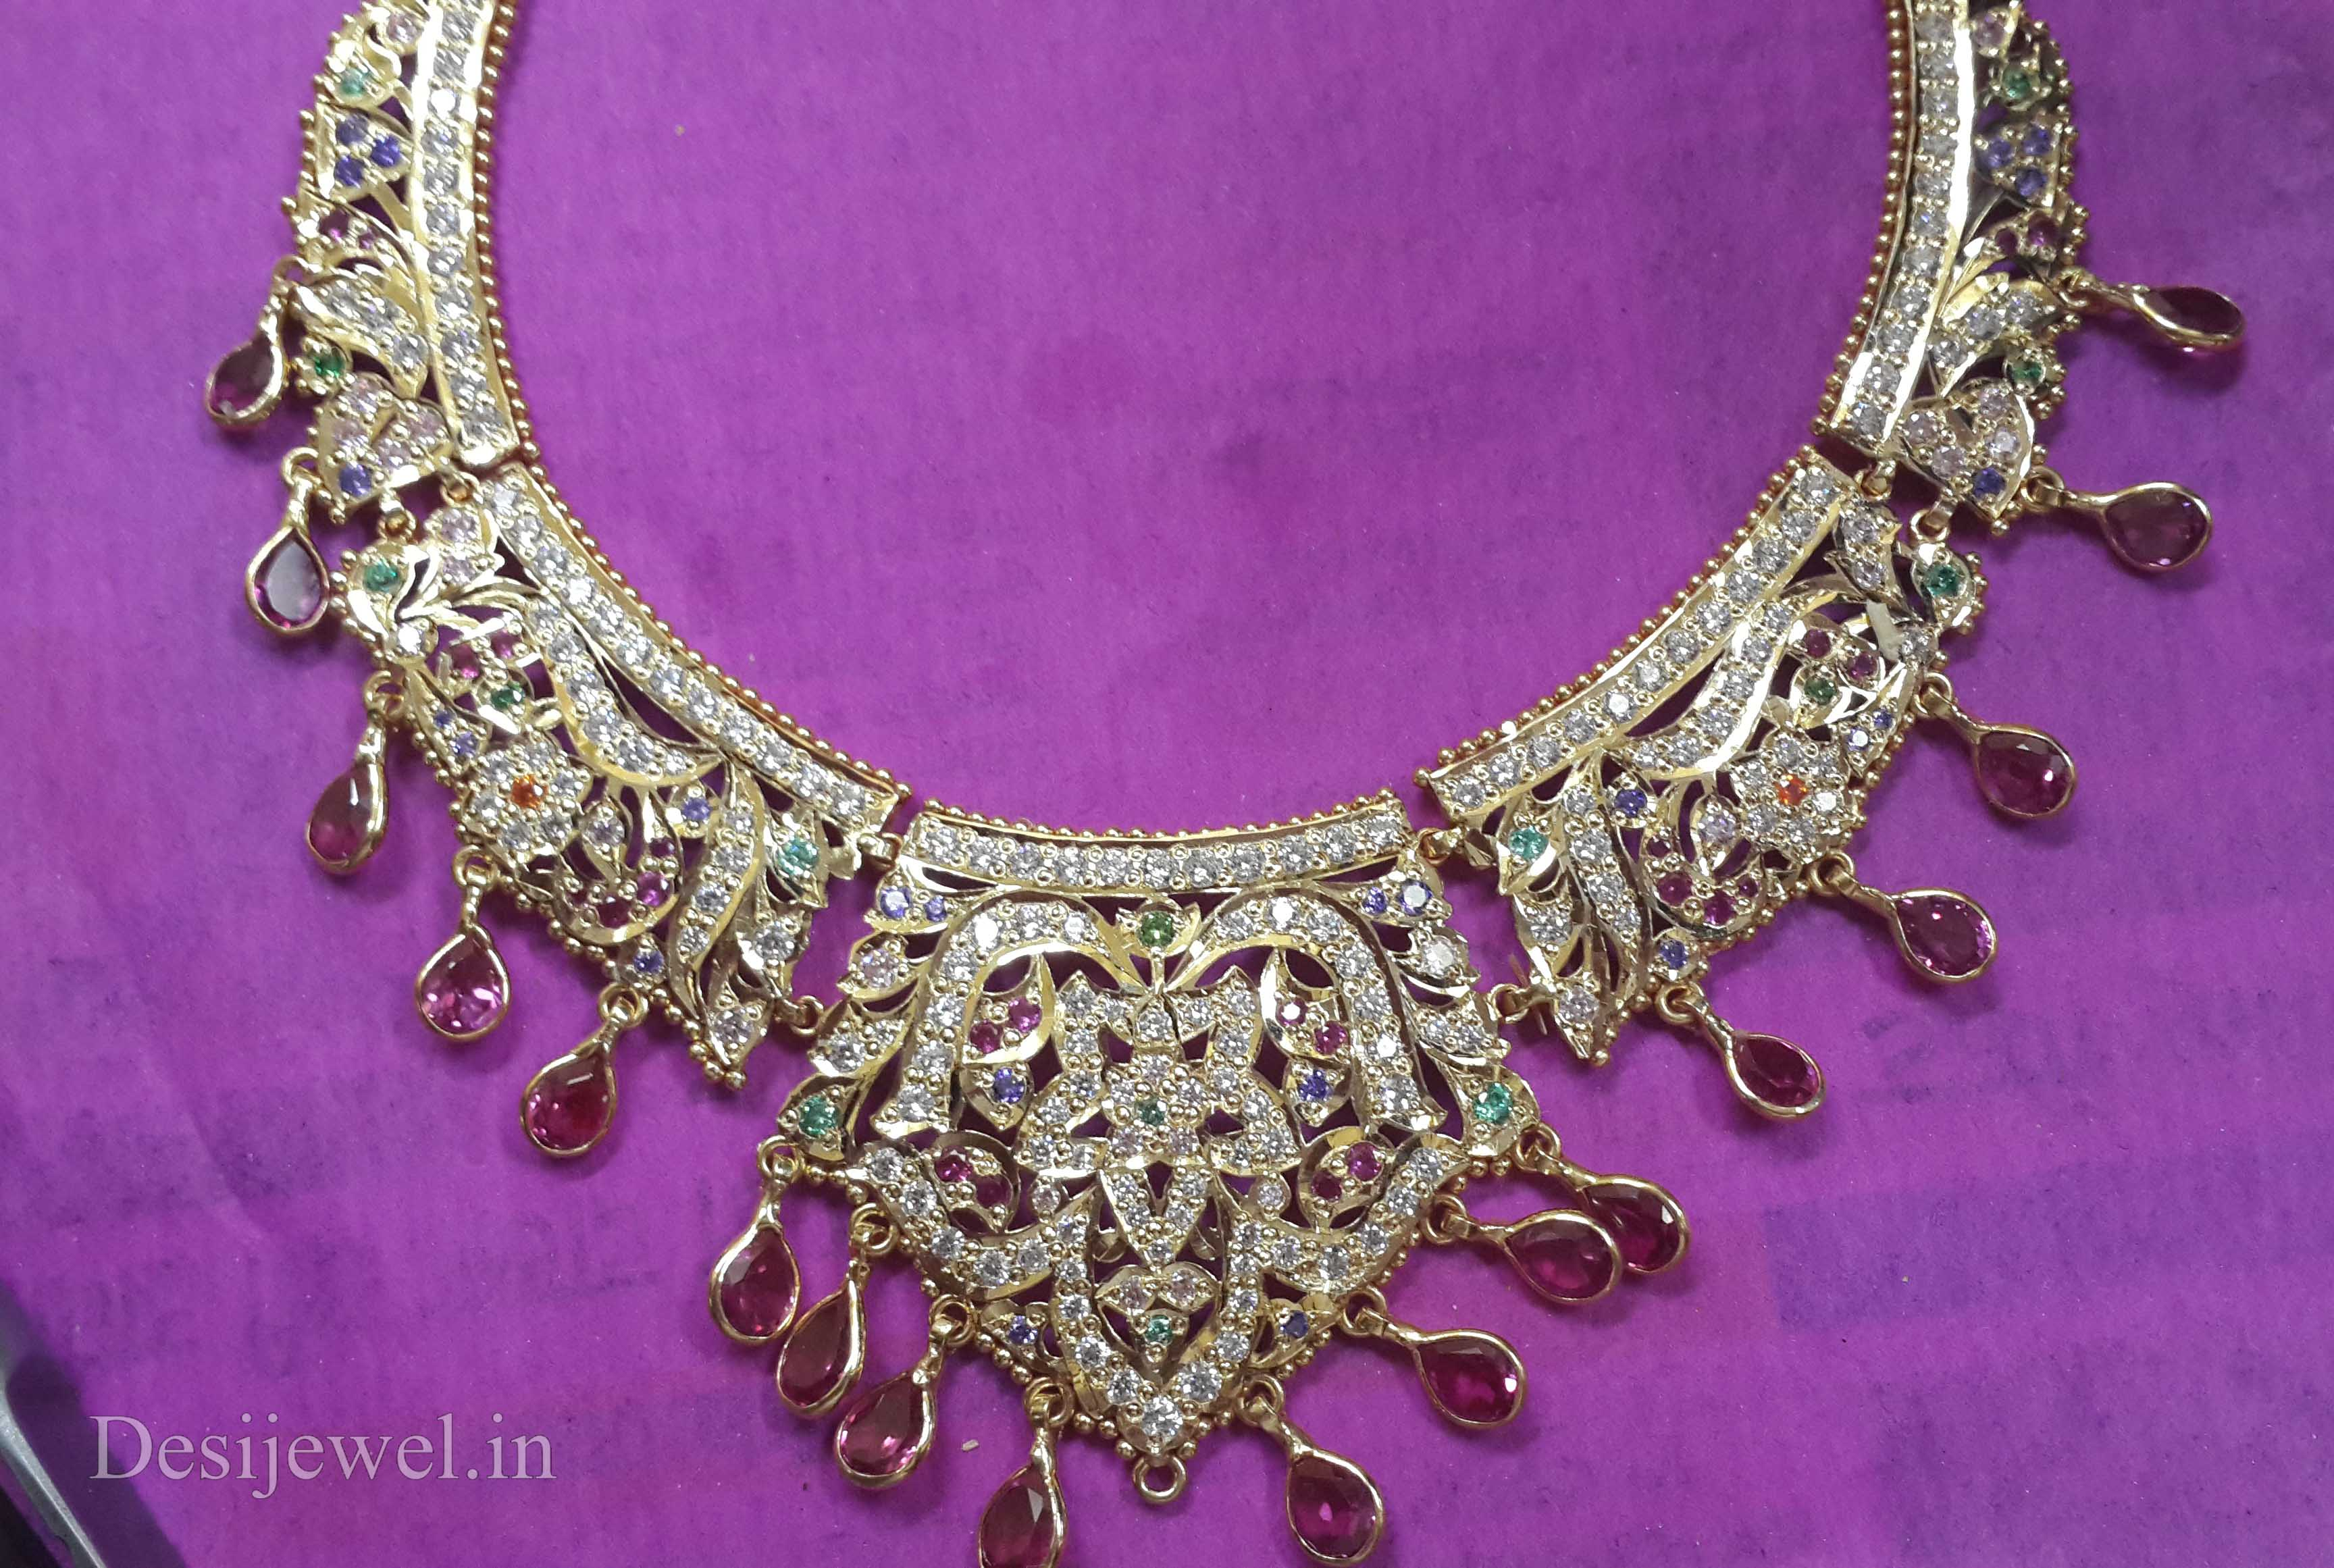 Marwadi Rajasthani Desi gold Necklace And Weight is 35-40 gm